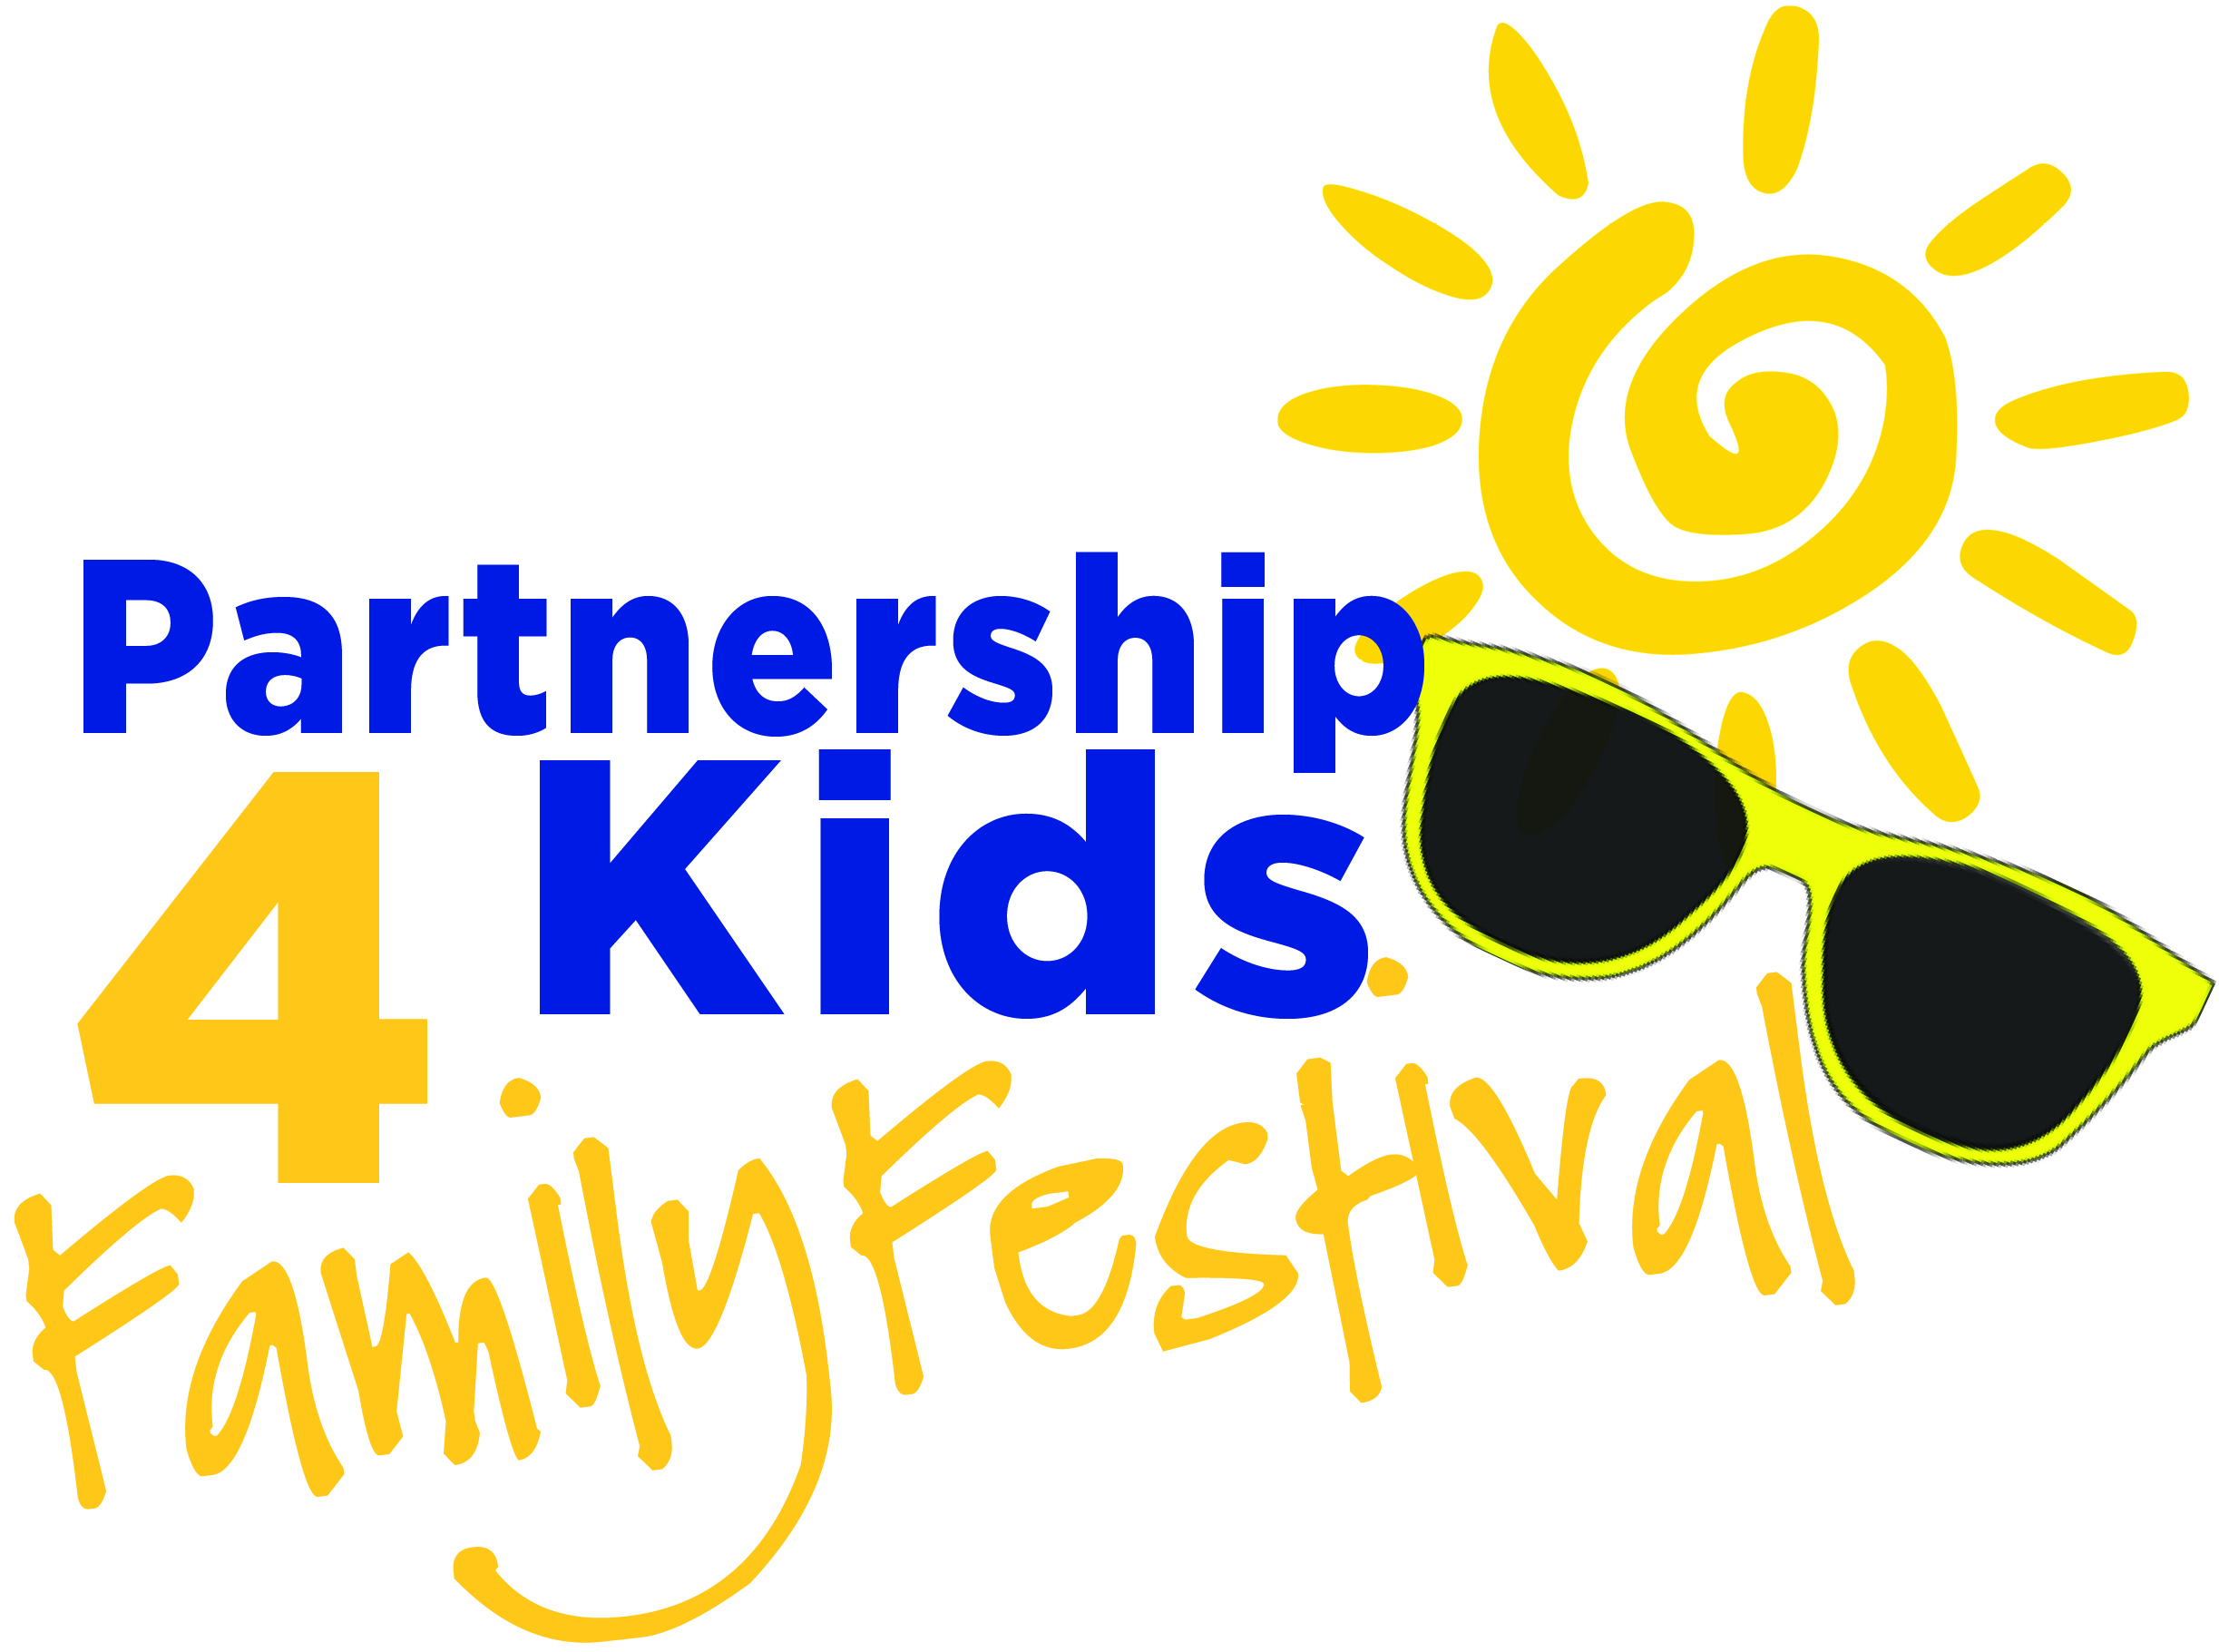 Partnership 4 Kids Family Festival, June 6th